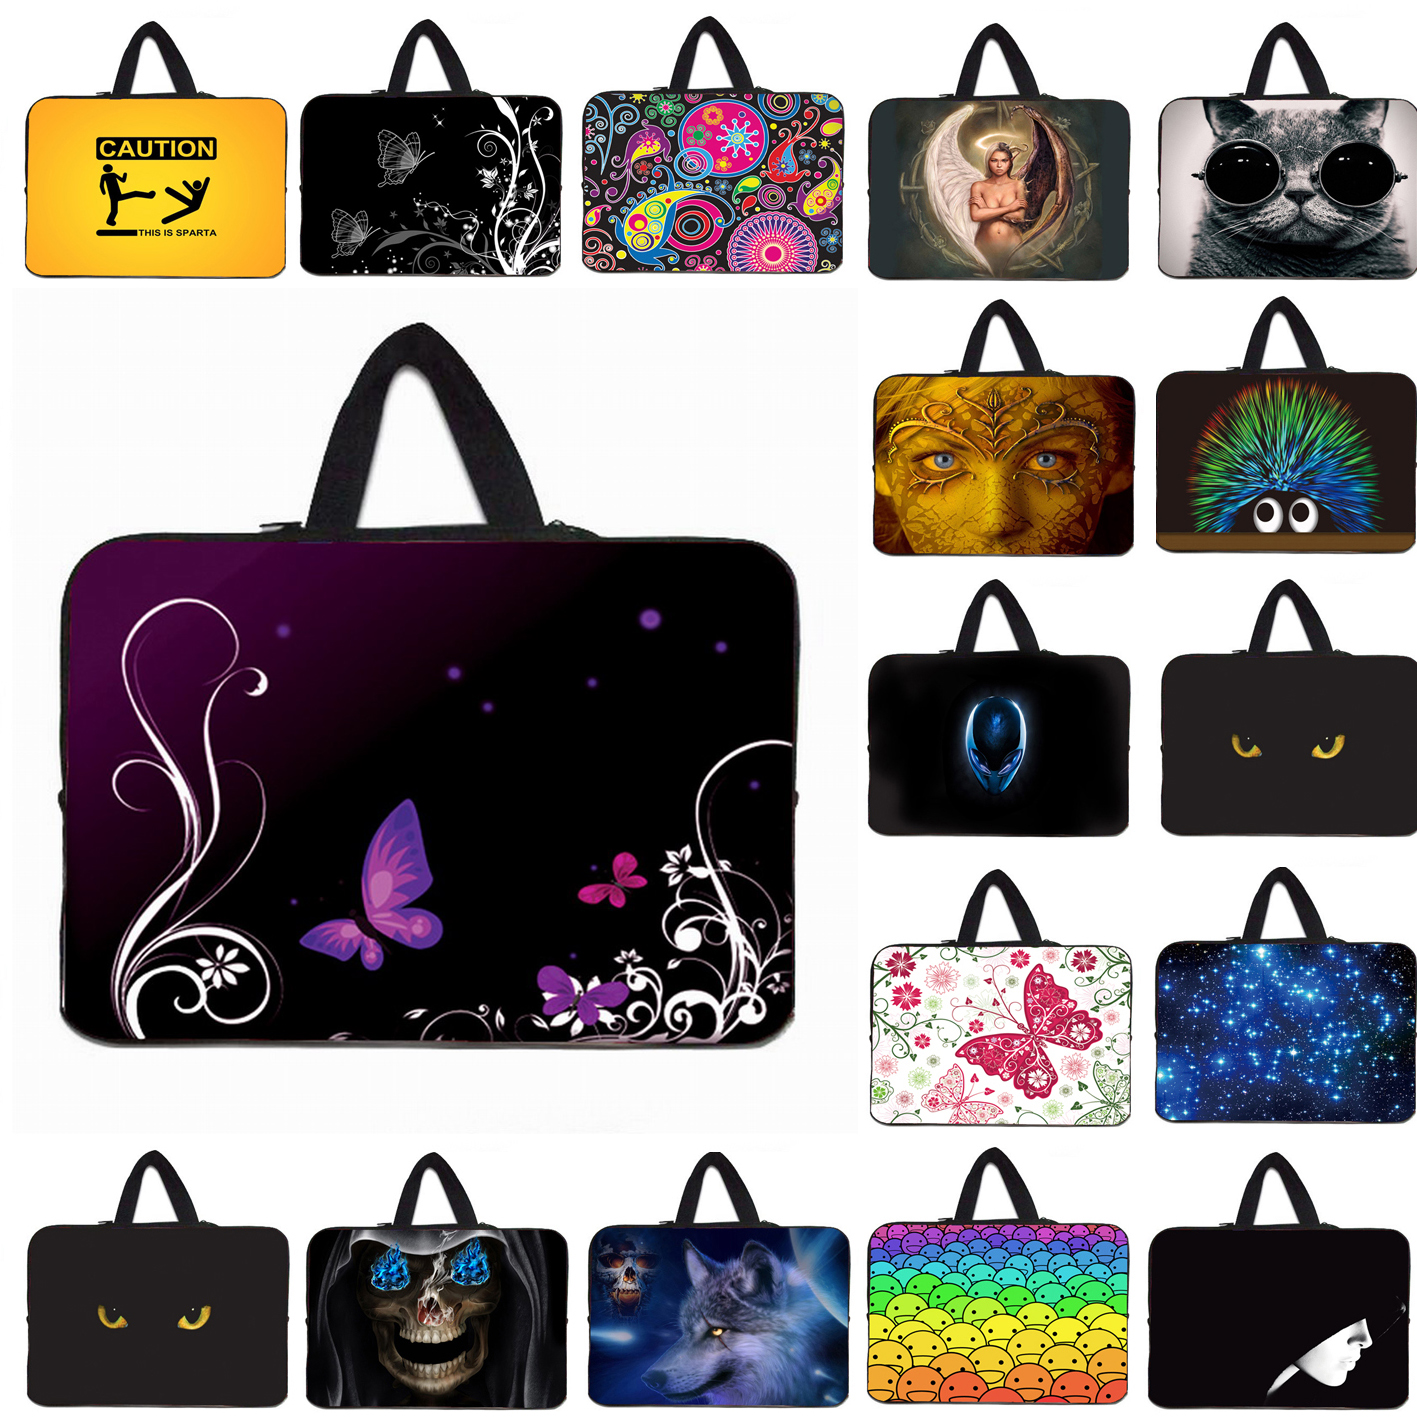 10 9.7 Tablet 10.1 11.6 12 13 14 15.4 15.6 17 Slim Notebook Laptops Bags Cases Washable Ultrabook Protect Briefcase Pouch Bag